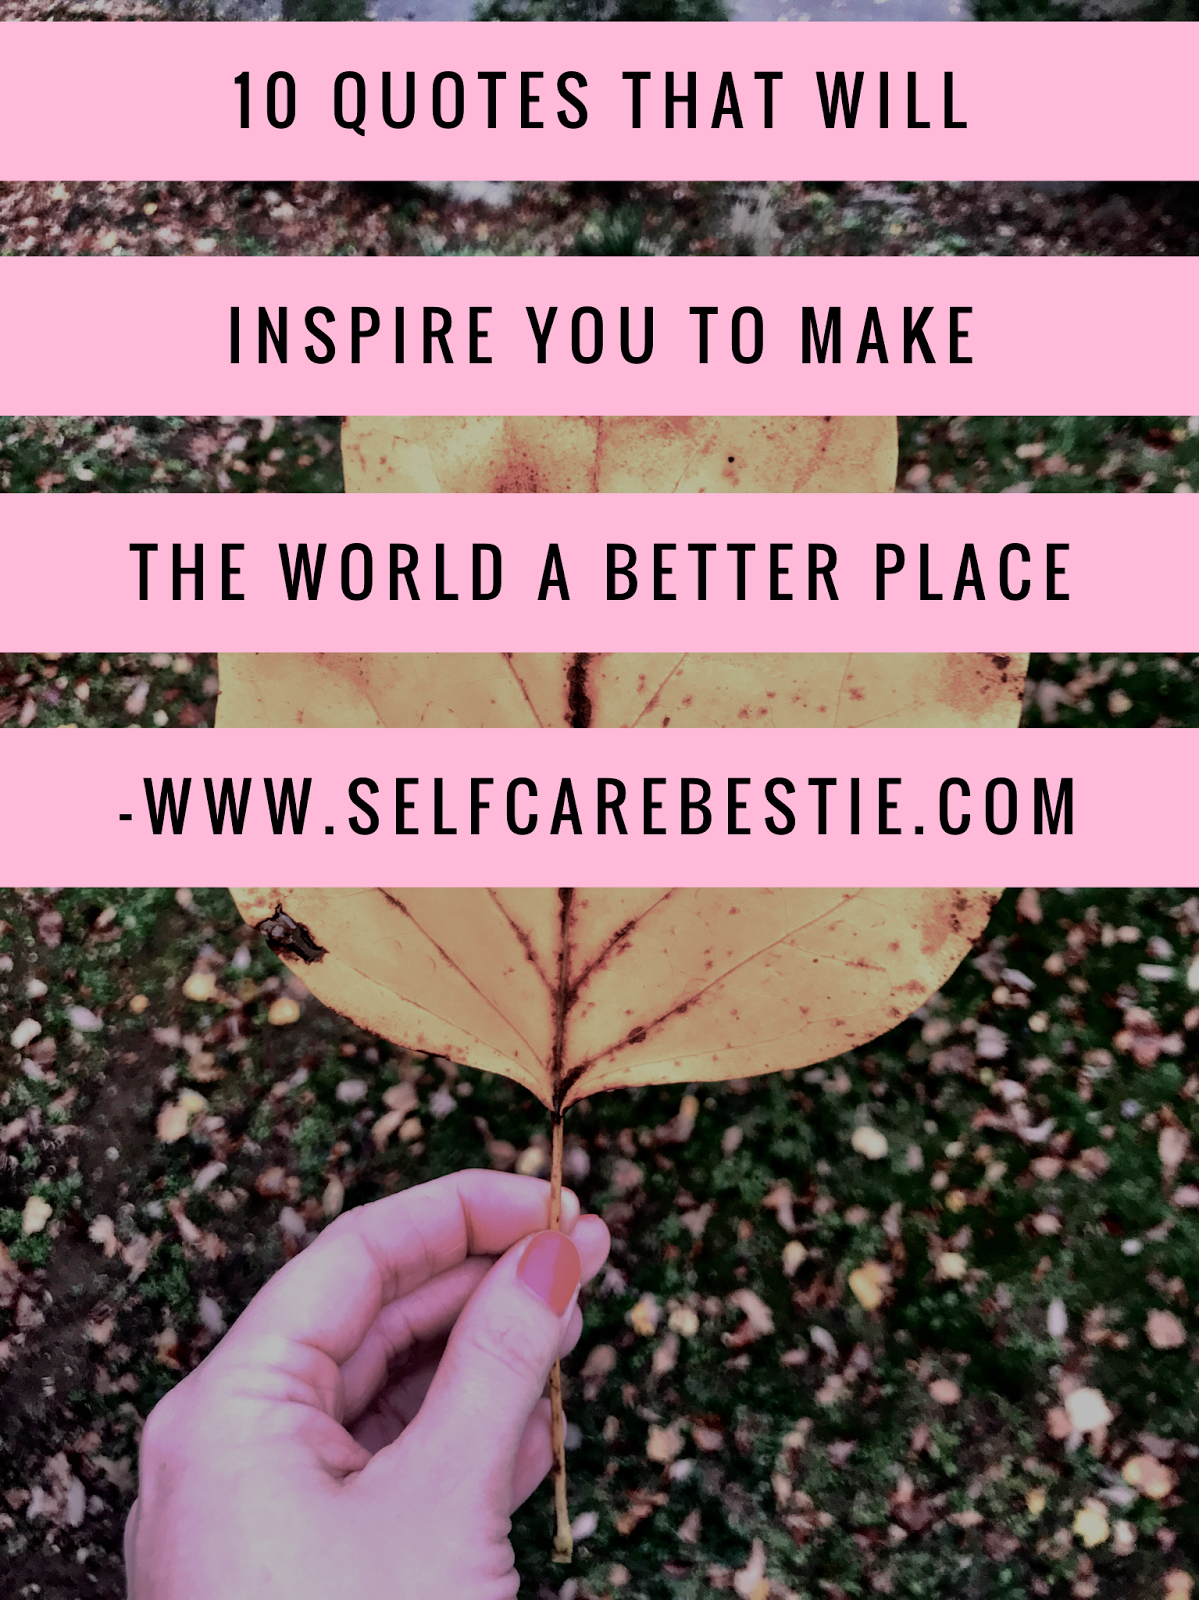 Self Care Bestie Be The Change 10 Quotes That Will Inspire You To